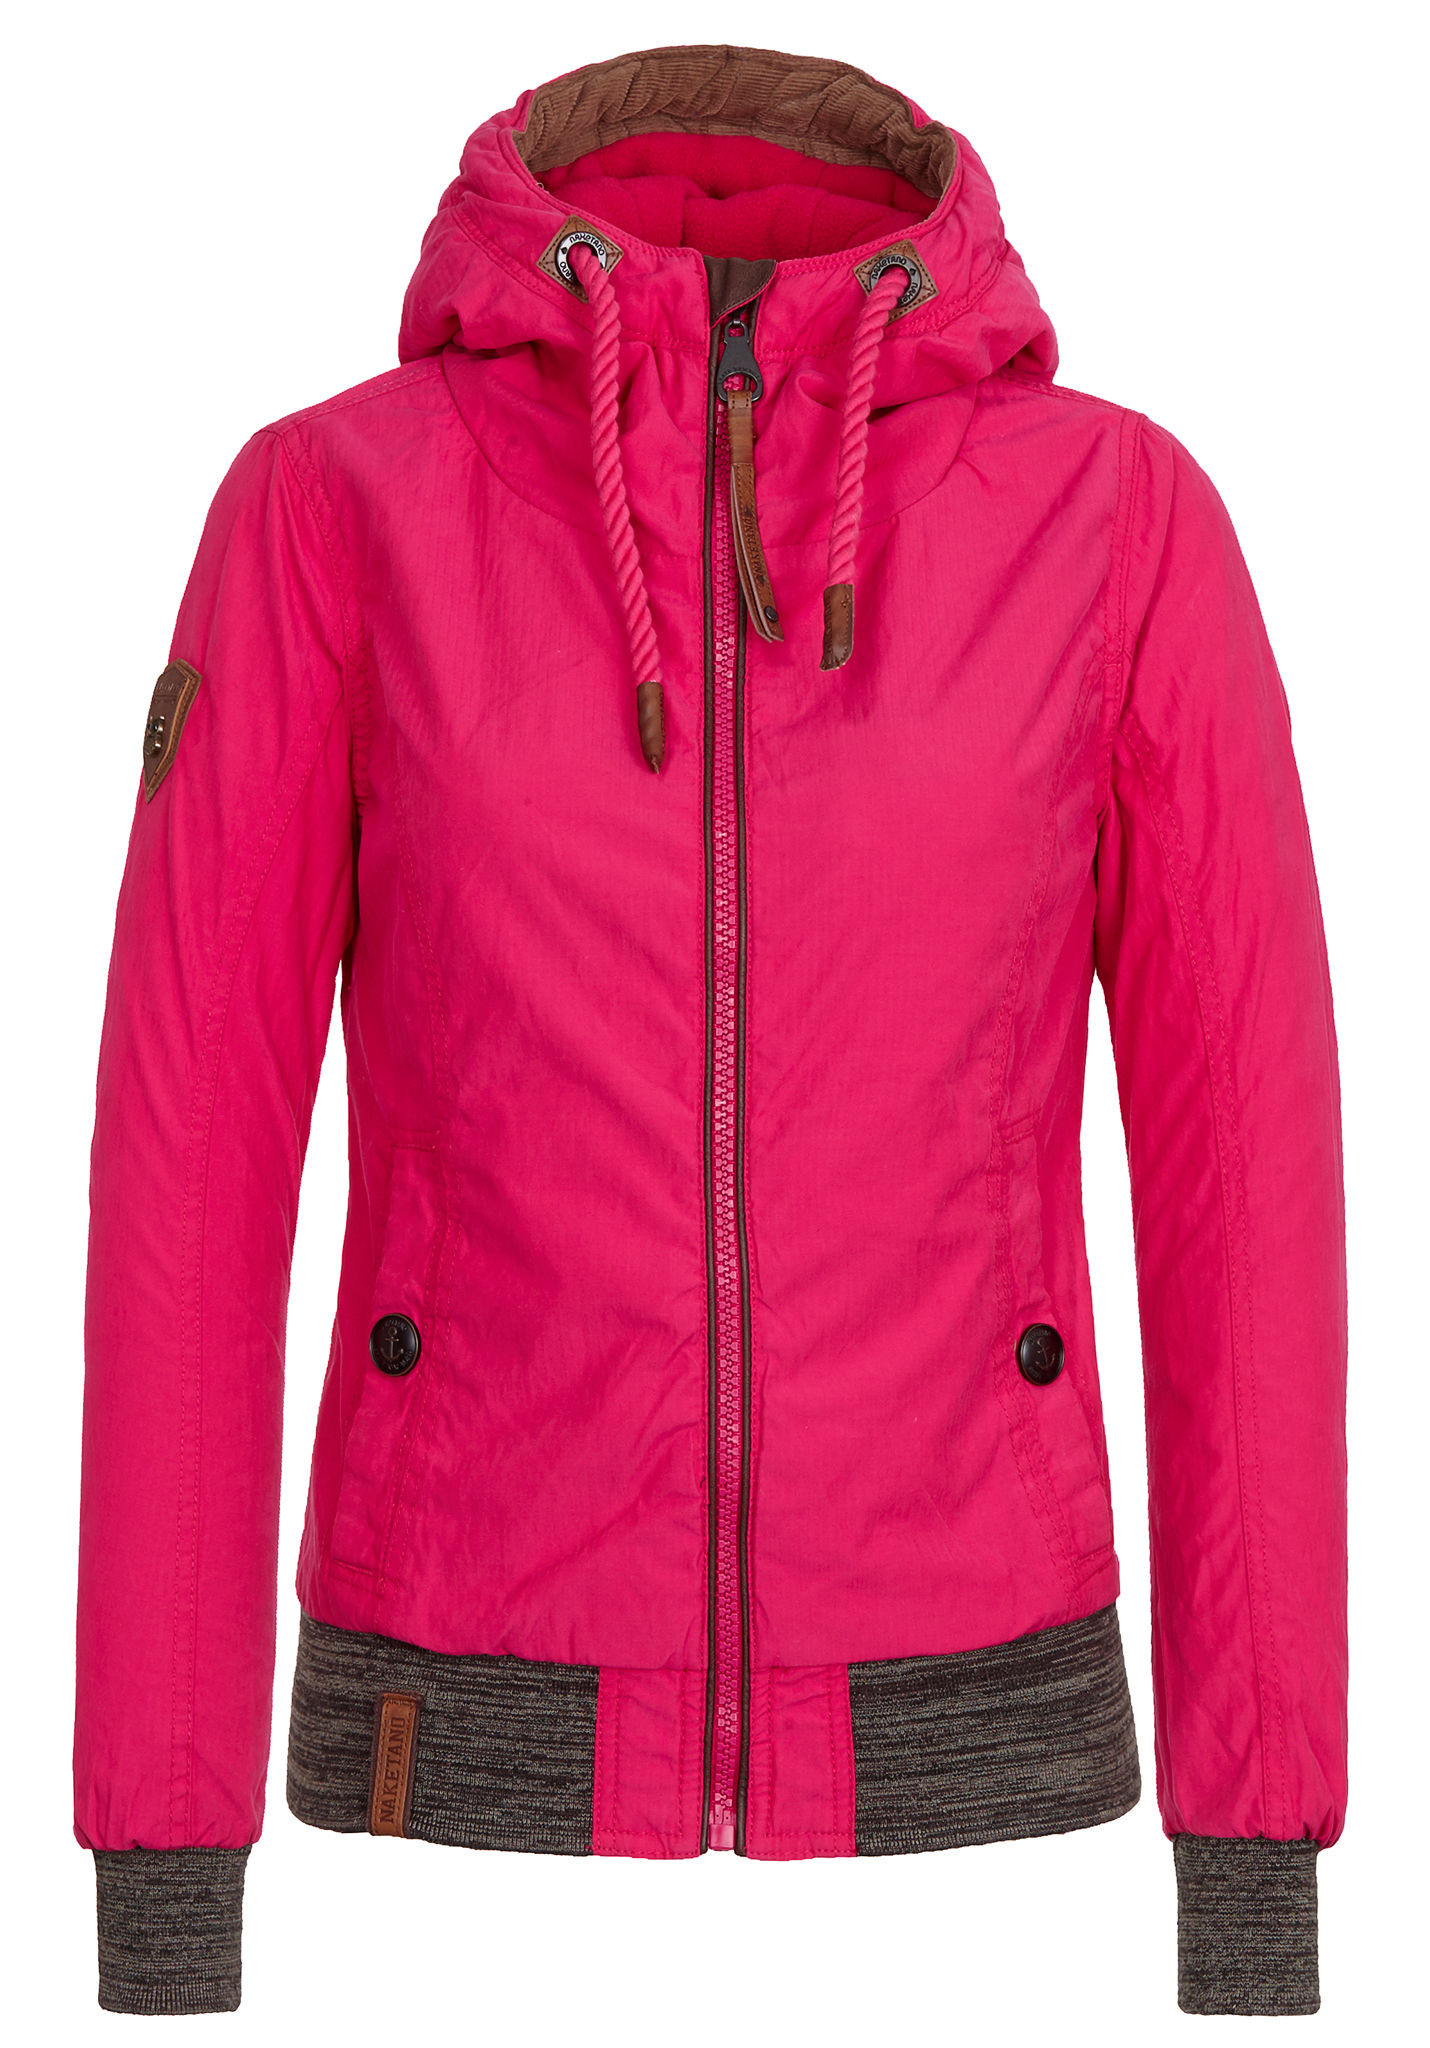 Damen jacken in pink